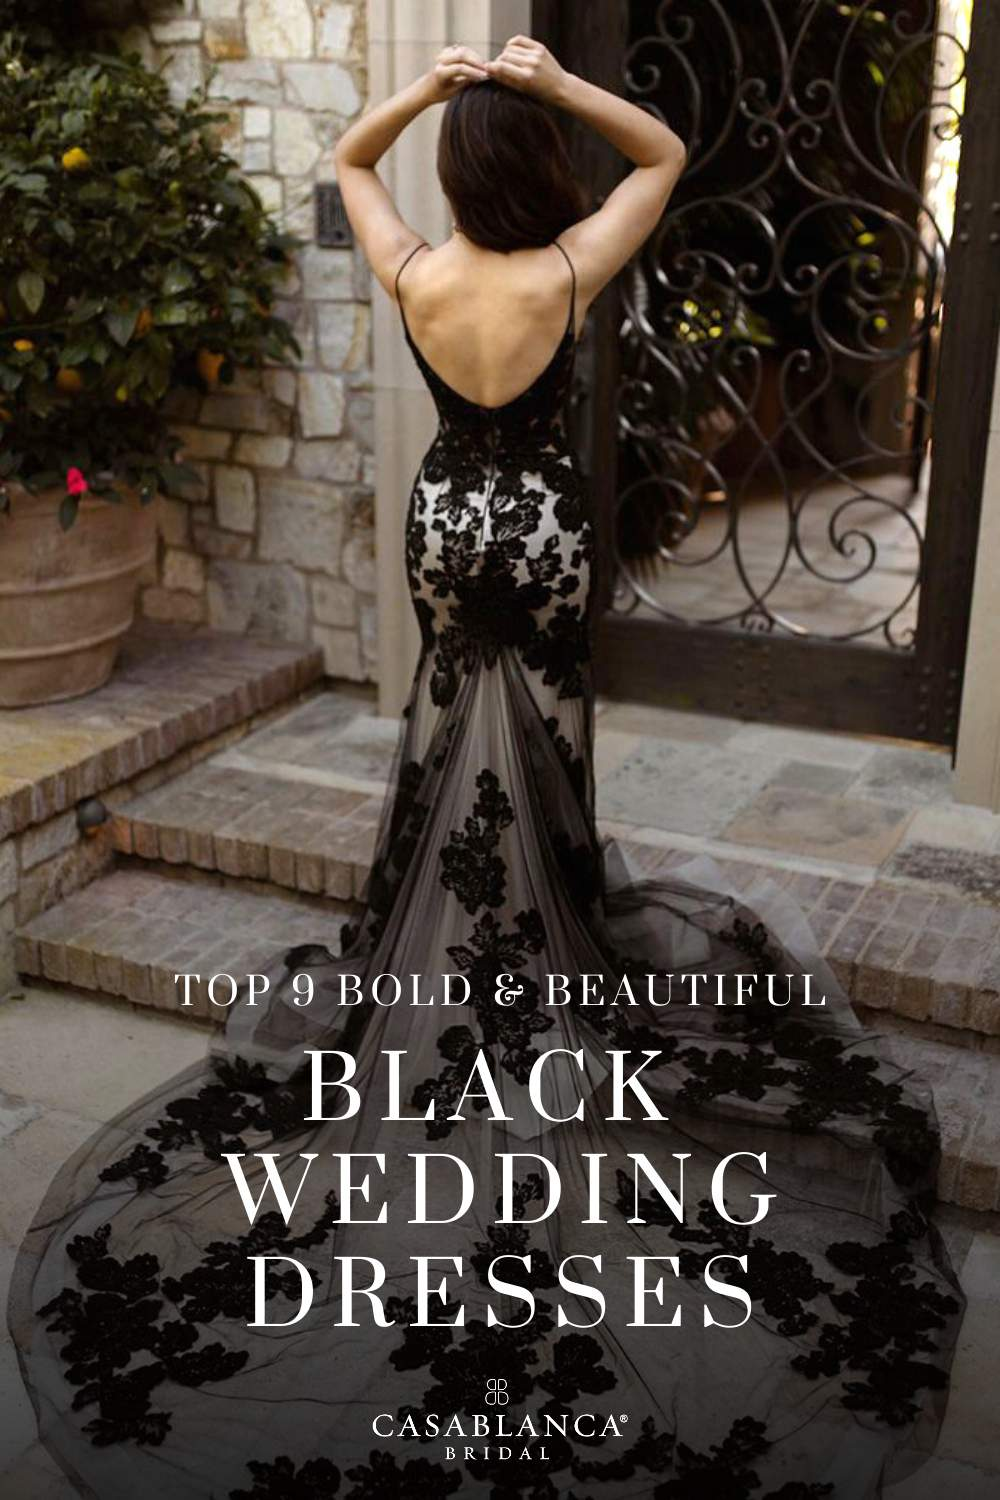 20 Bold Black Wedding Dresses For Your Non Traditional Wedding Day ...